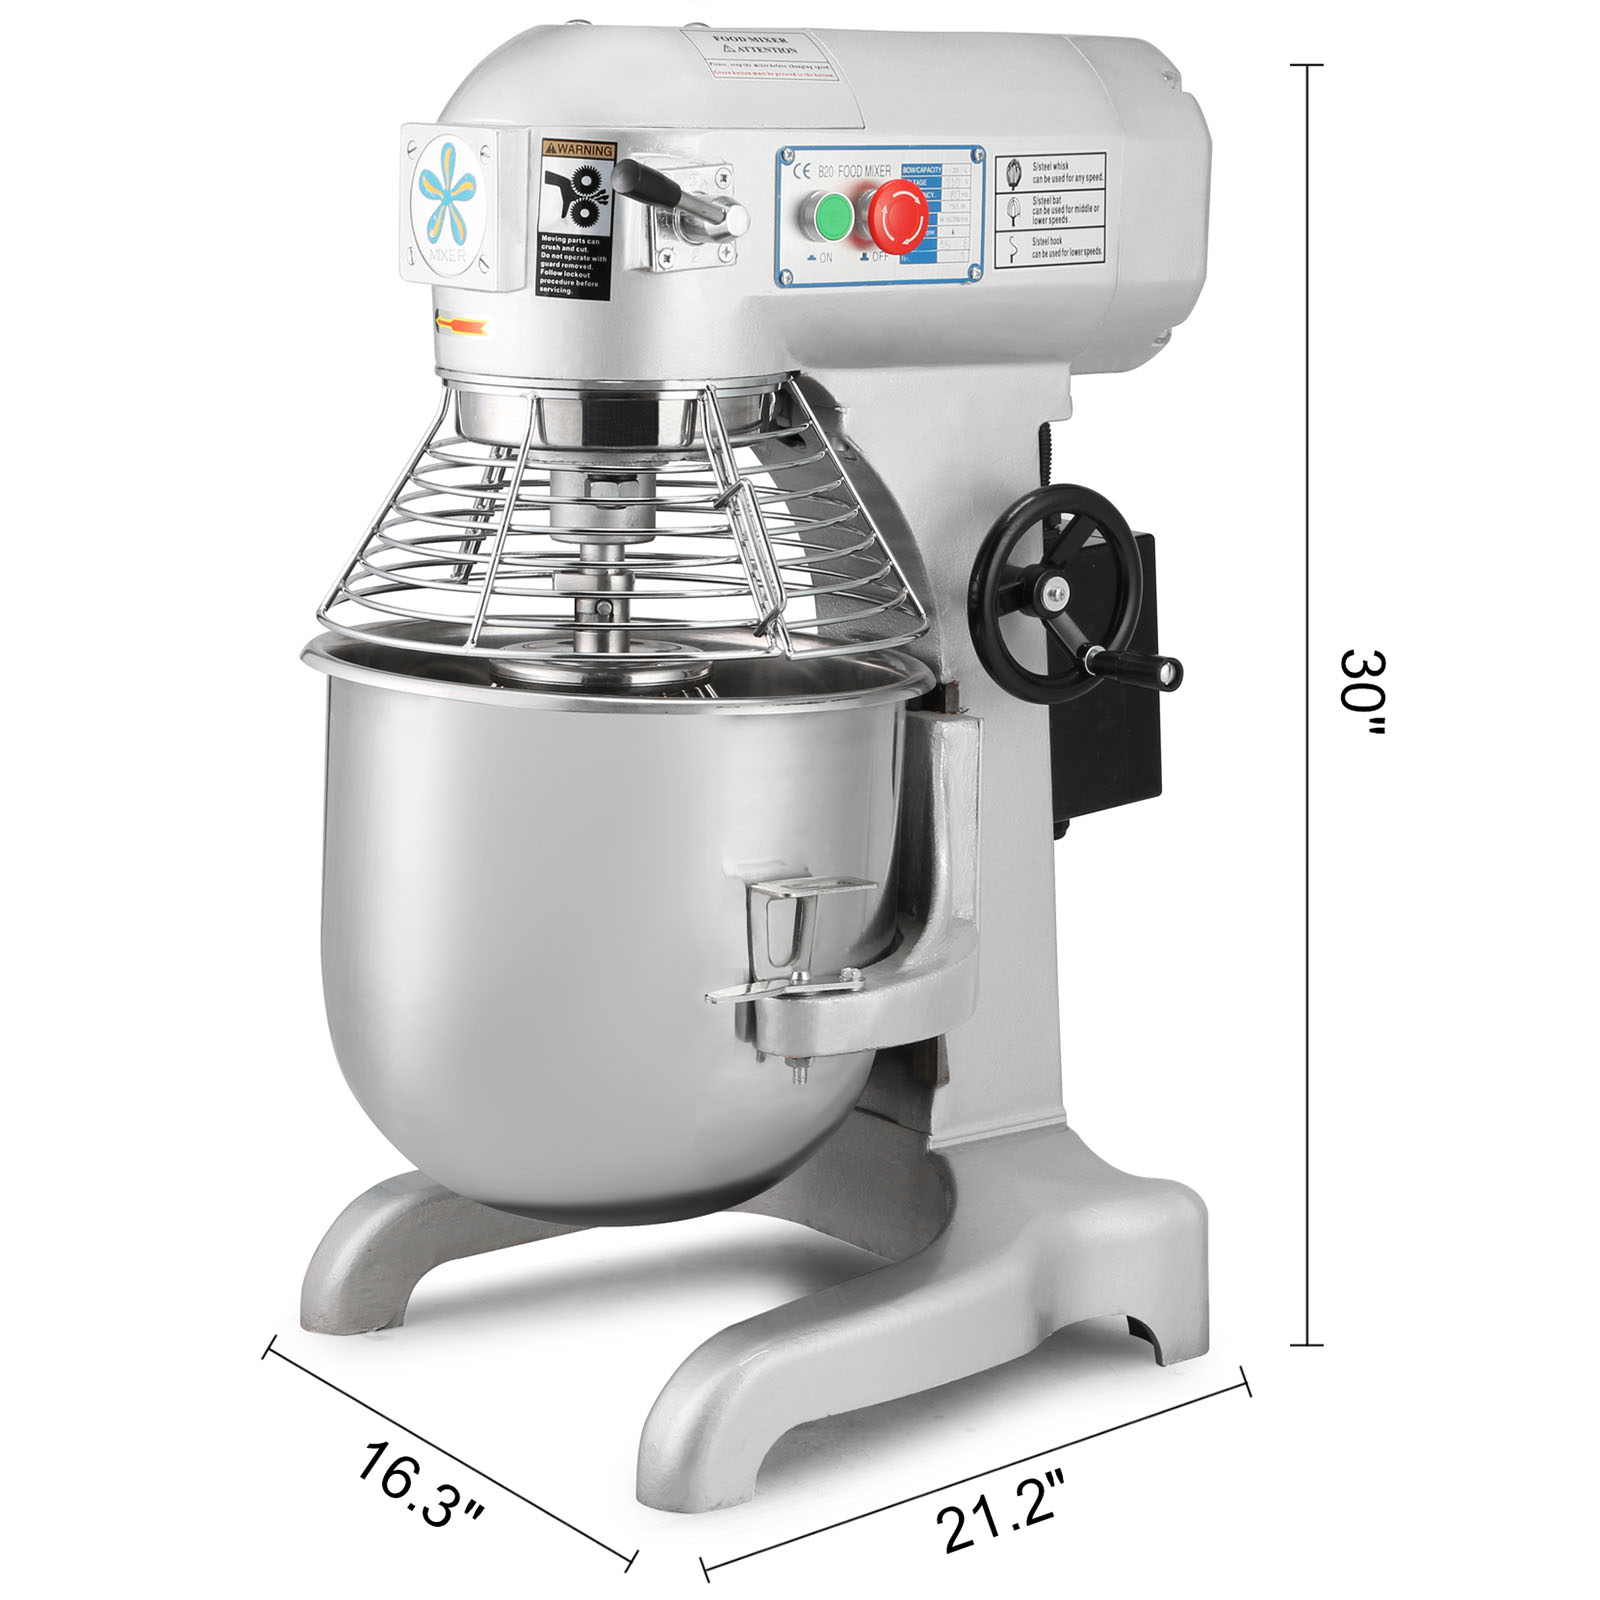 Commercial Countertop Mixer Food Dough Stand Mixer Mixing Tool Stainless Steel Bowl